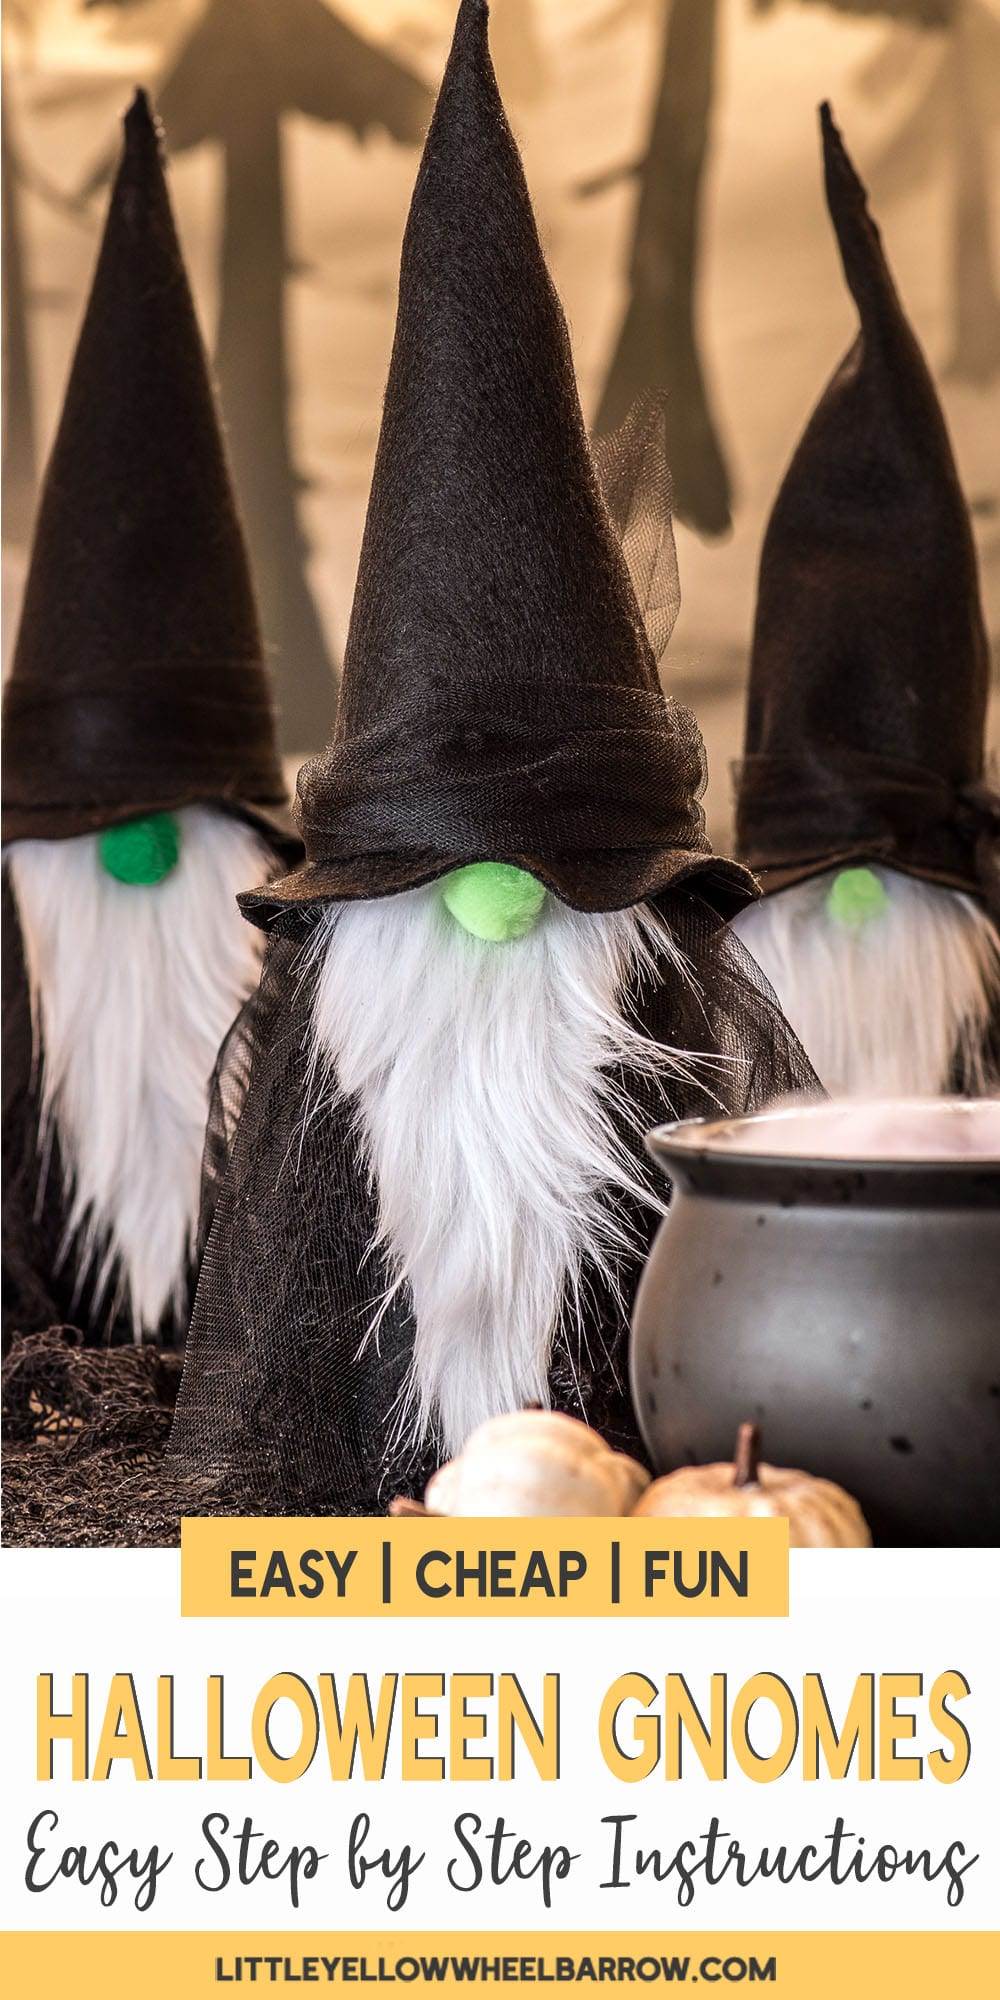 DIY Felt Gnome Witches A Quick Halloween Craft Project